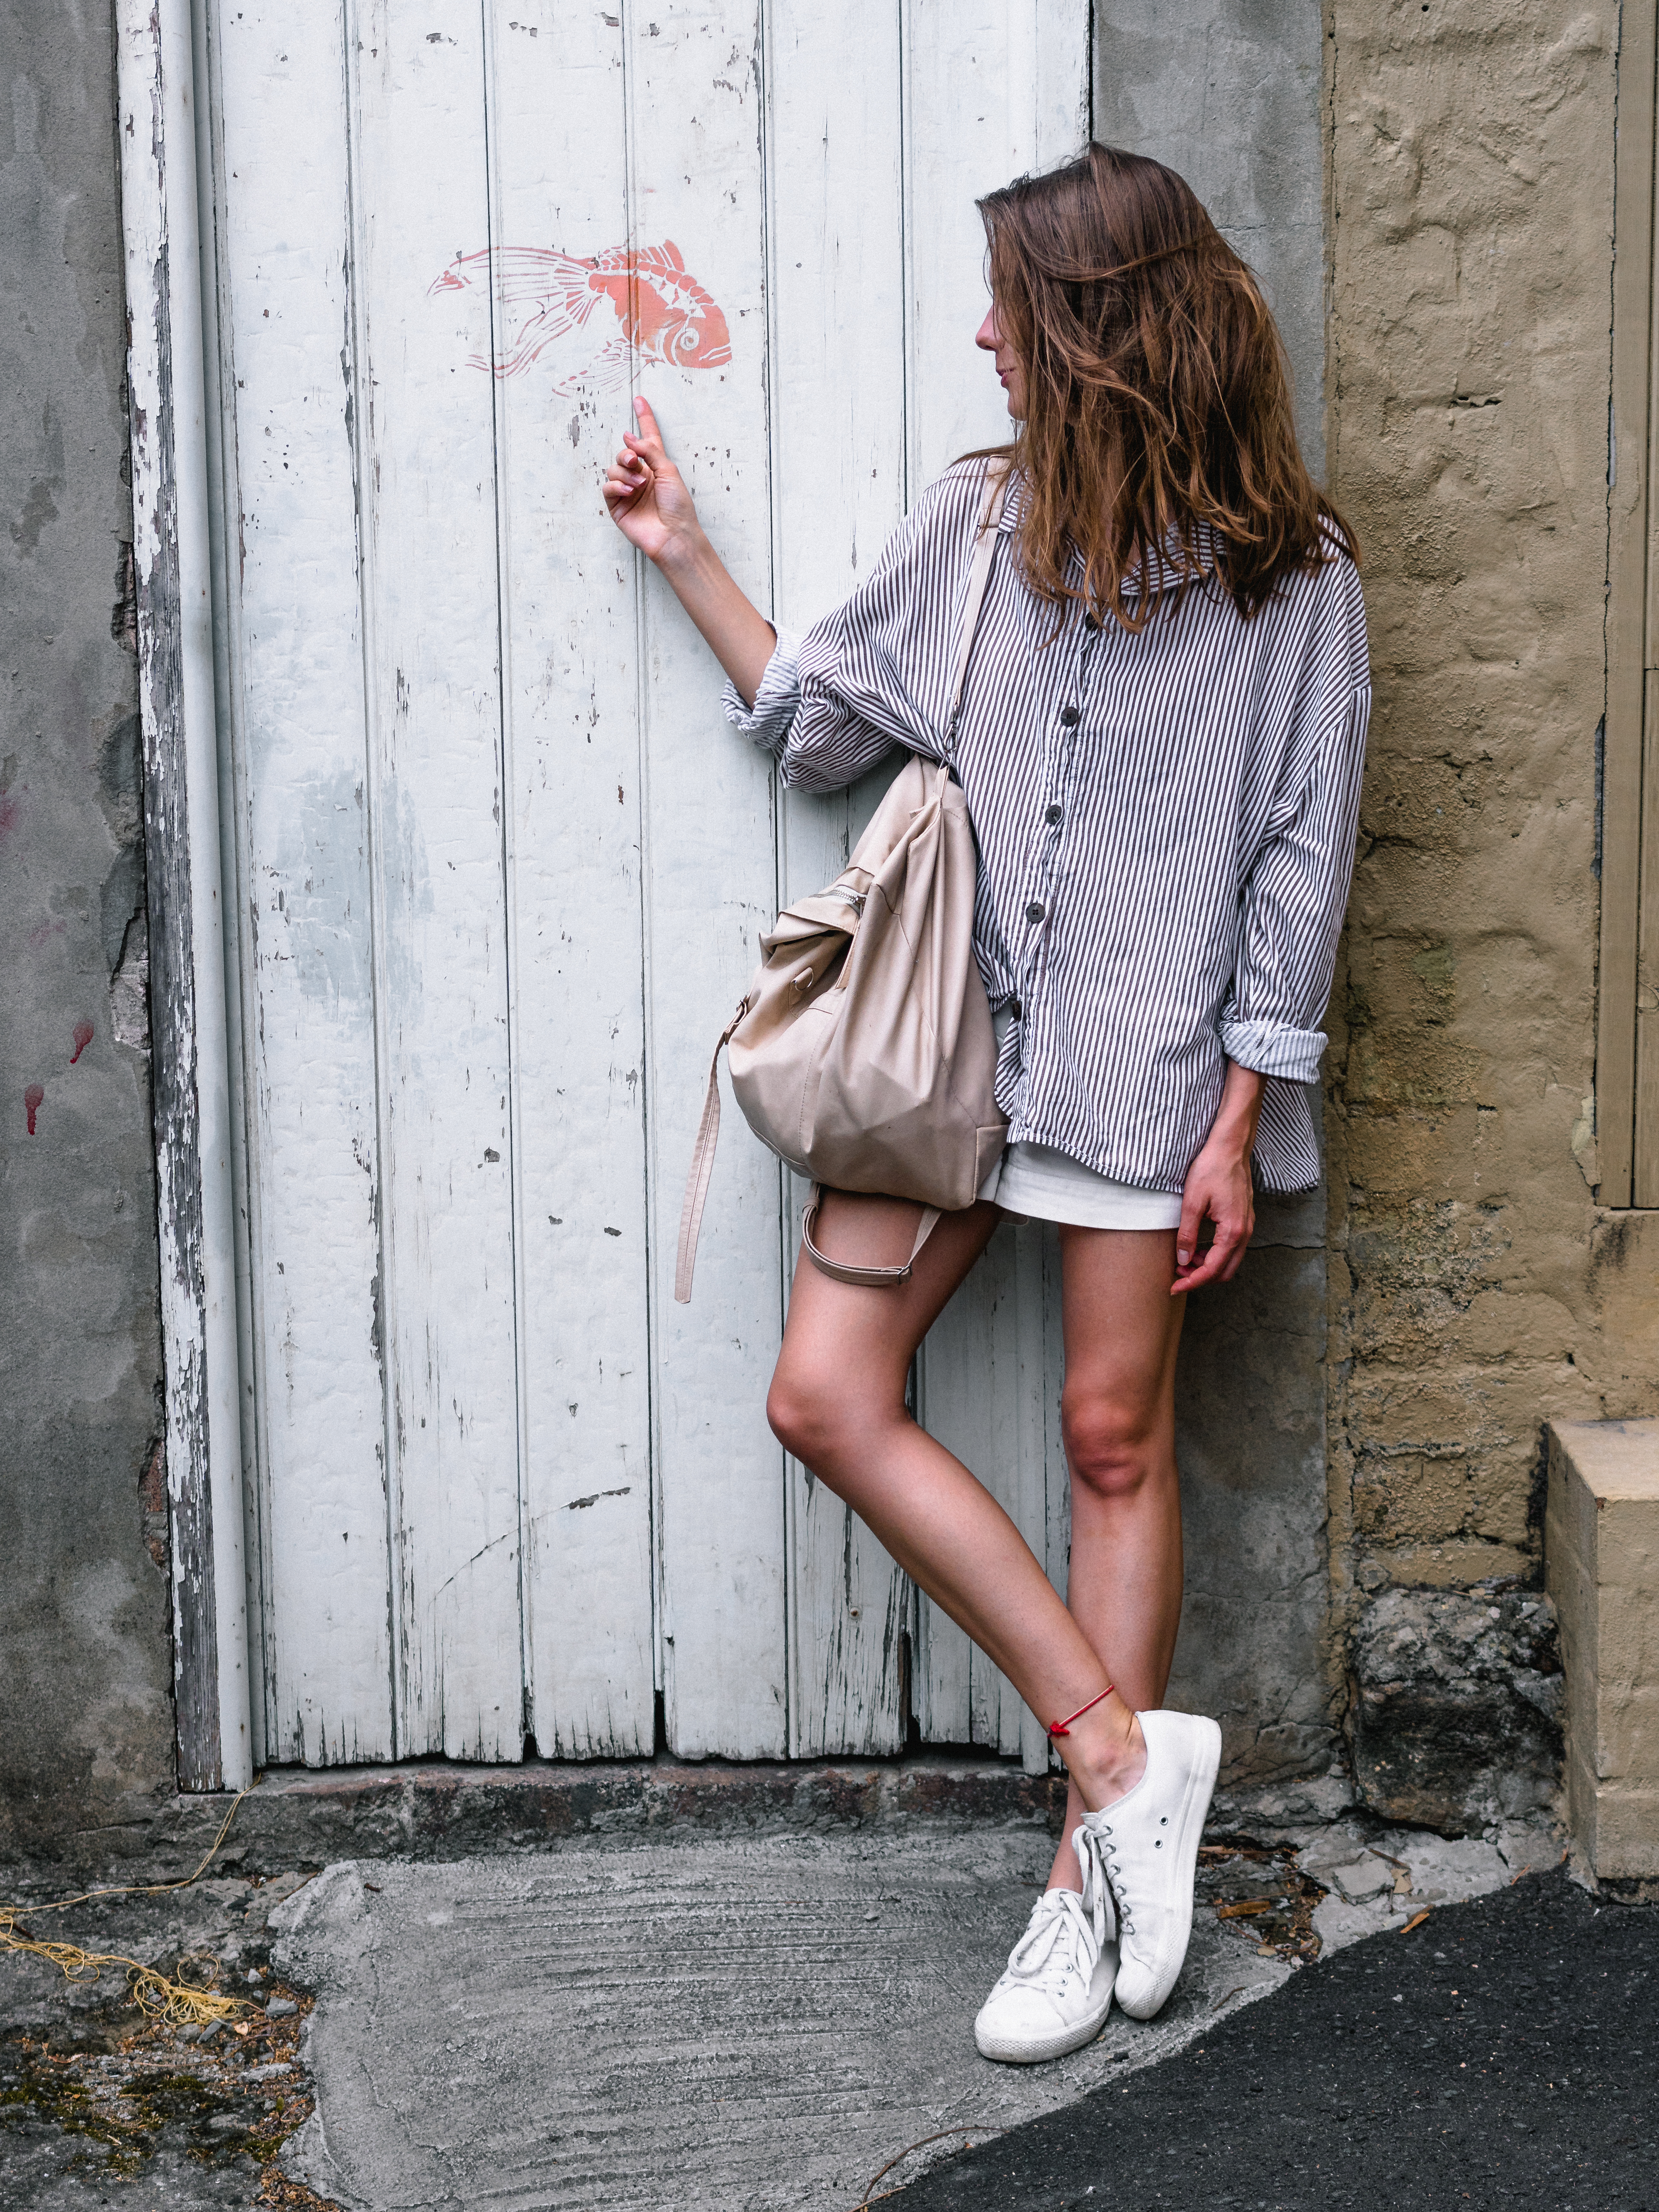 Woman Wearing Gray Long-sleeved Shirt Looking Side While Leaning on Wall